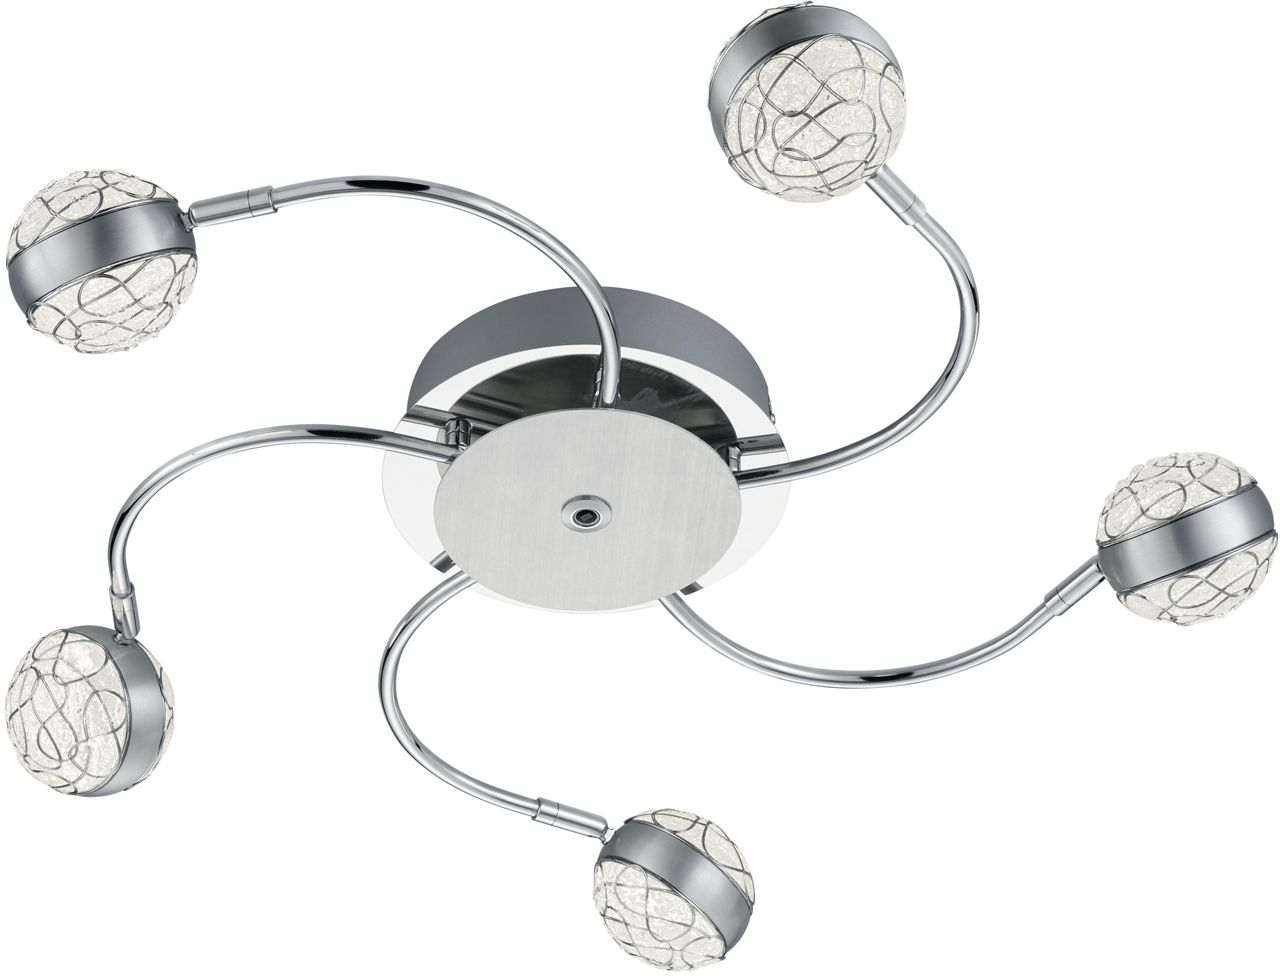 LED-kattovalaisin Trio Portos Ø 650x95 mm kromi